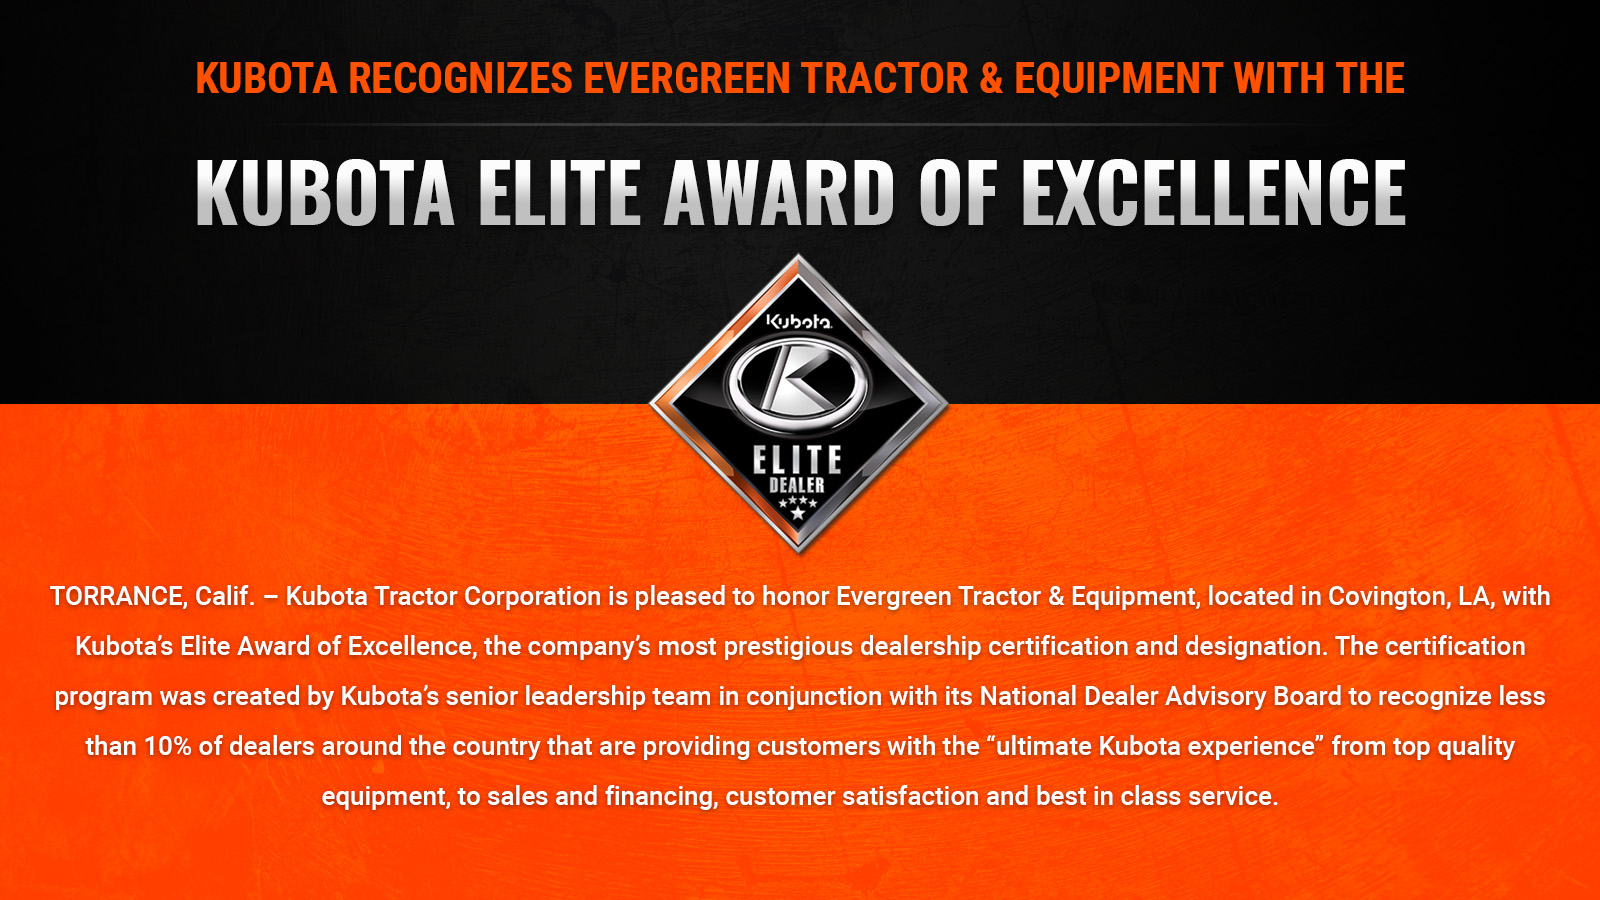 "TORRANCE, Calif. – Kubota Tractor Corporation is pleased to honor Evergreen Tractor & Equipment, located in Covington, LA, with Kubota's Elite Award of Excellence, the company's most prestigious dealership certification and designation. The certification program was created by Kubota's senior leadership team in conjunction with its National Dealer Advisory Board to recognize less than 10% of dealers around the country that are providing customers with the ""ultimate Kubota experience"" from top quality equipment, to sales and financing, customer satisfaction and best in class service."